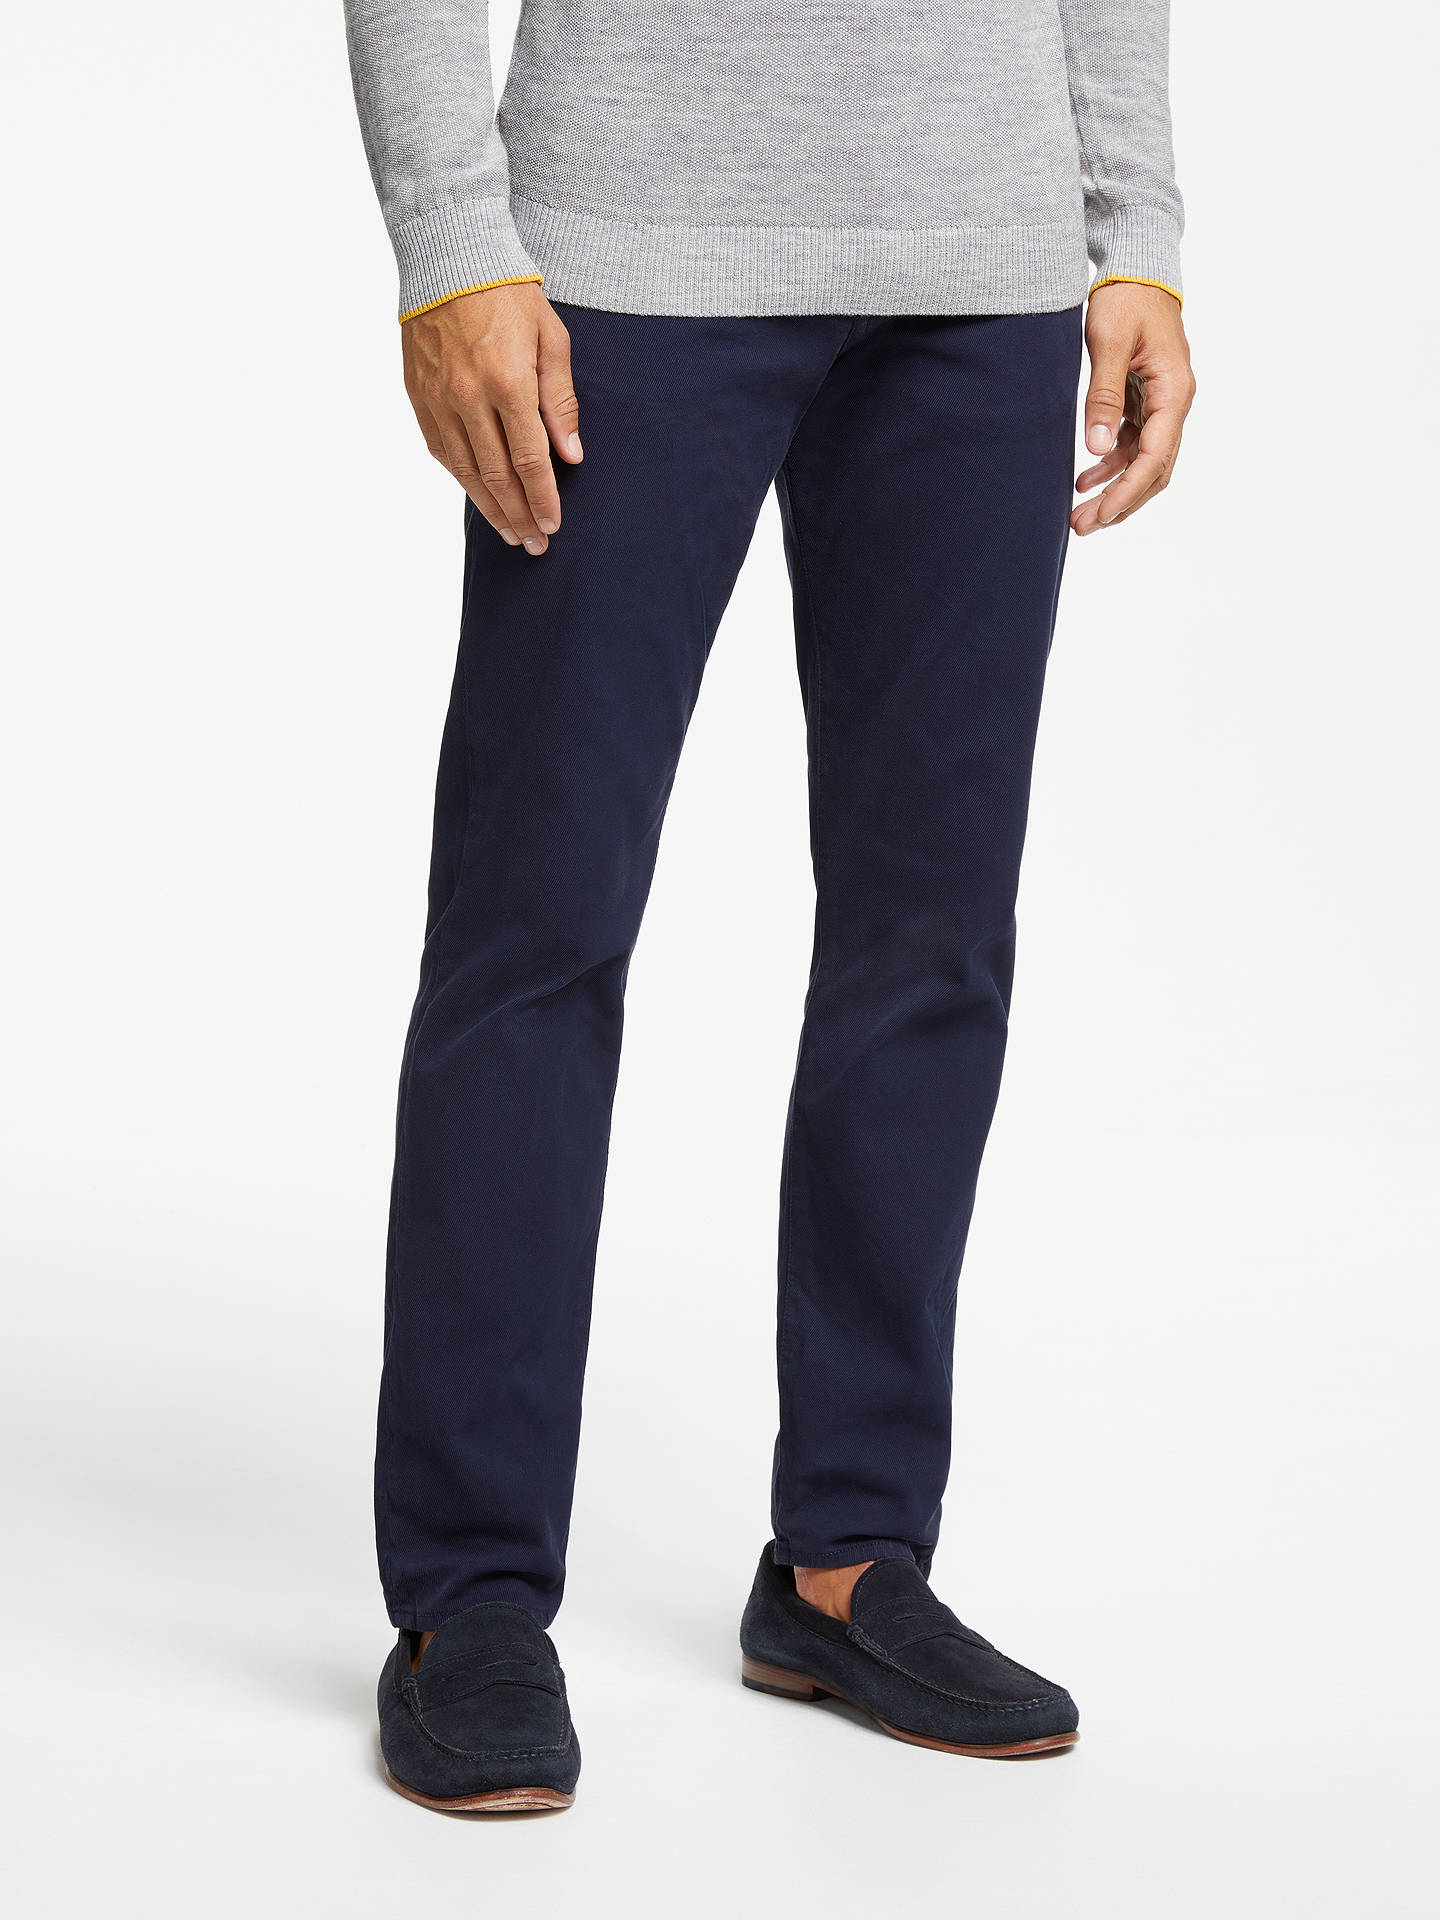 BuyPS Paul Smith Stretch Twill Tapered Fit Jeans, Navy, 30R Online at johnlewis.com